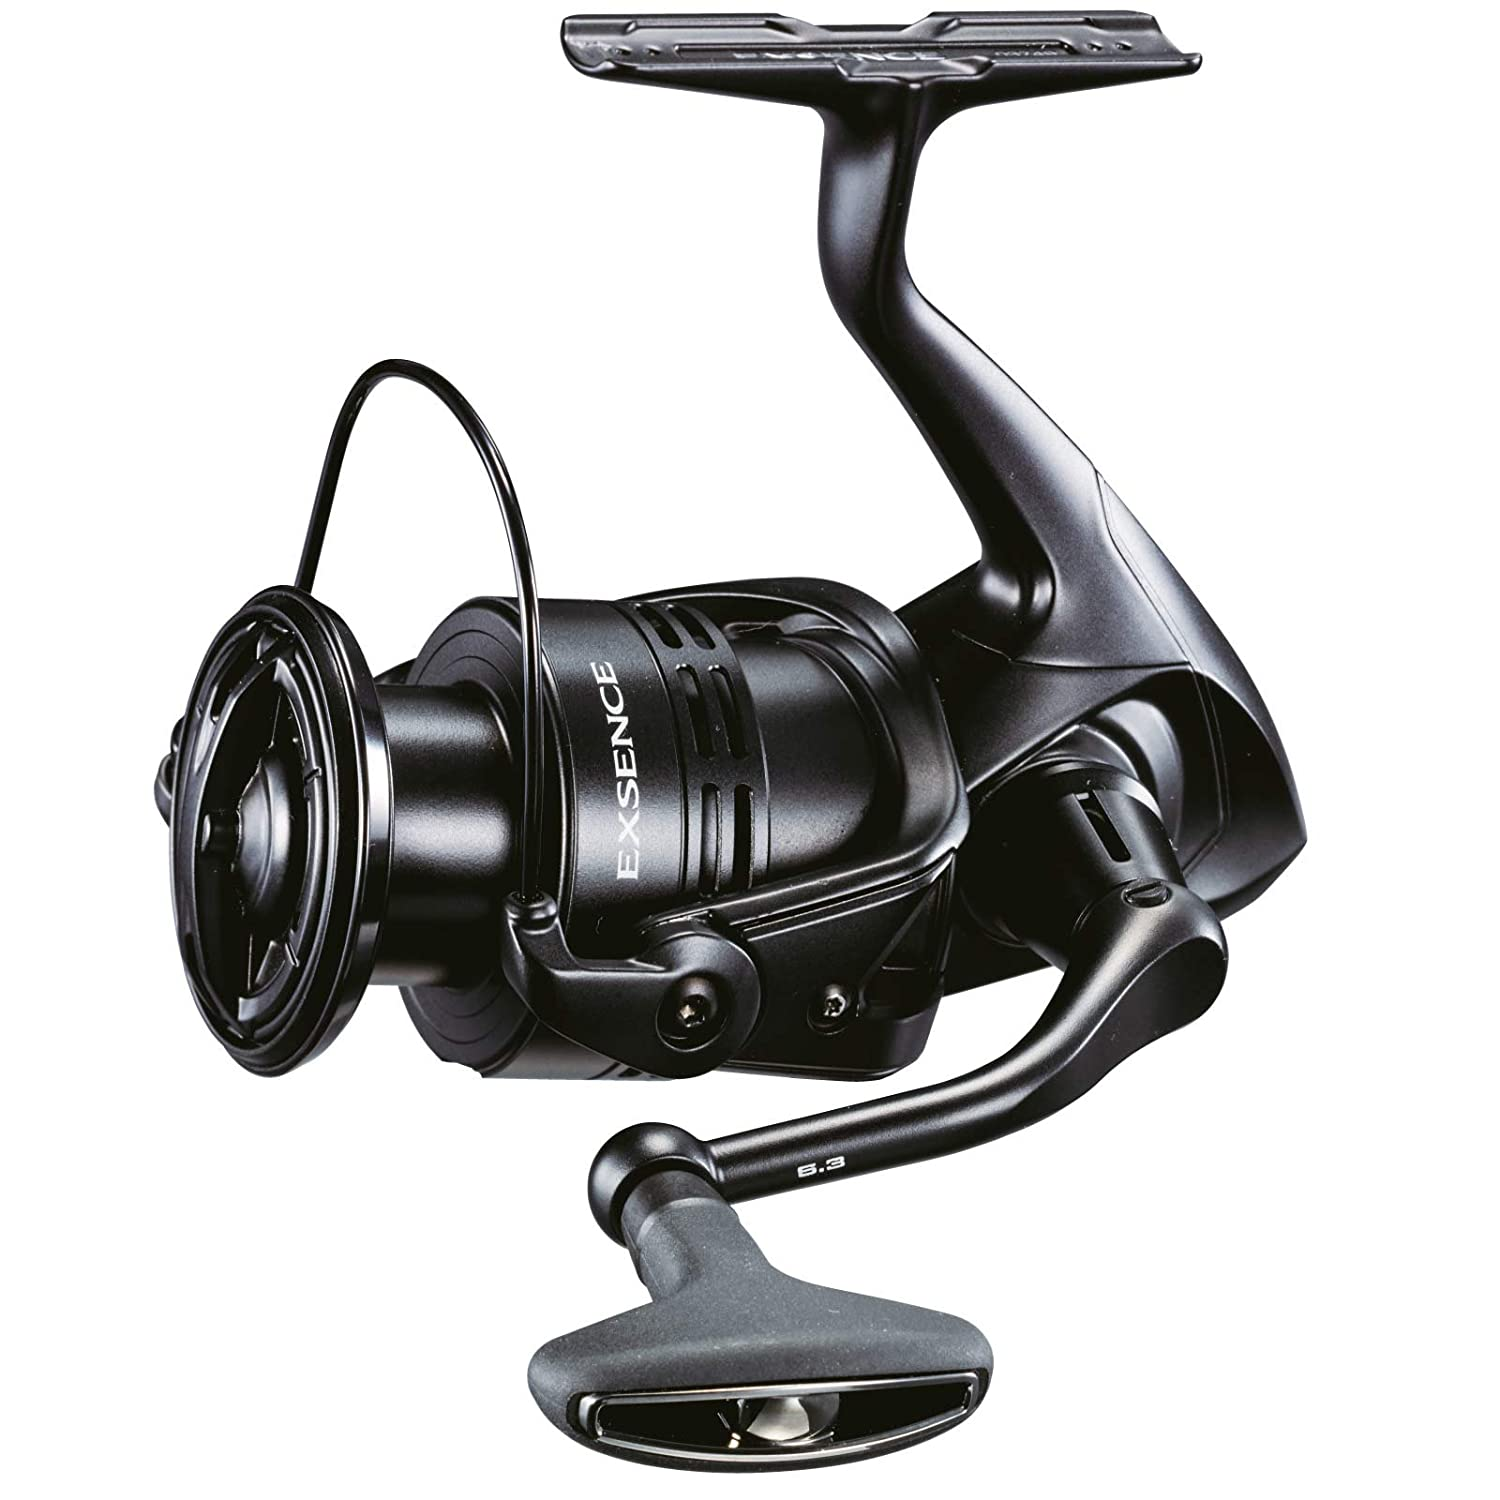 SHIMANO Exsence SW Spinning Fishing Reel